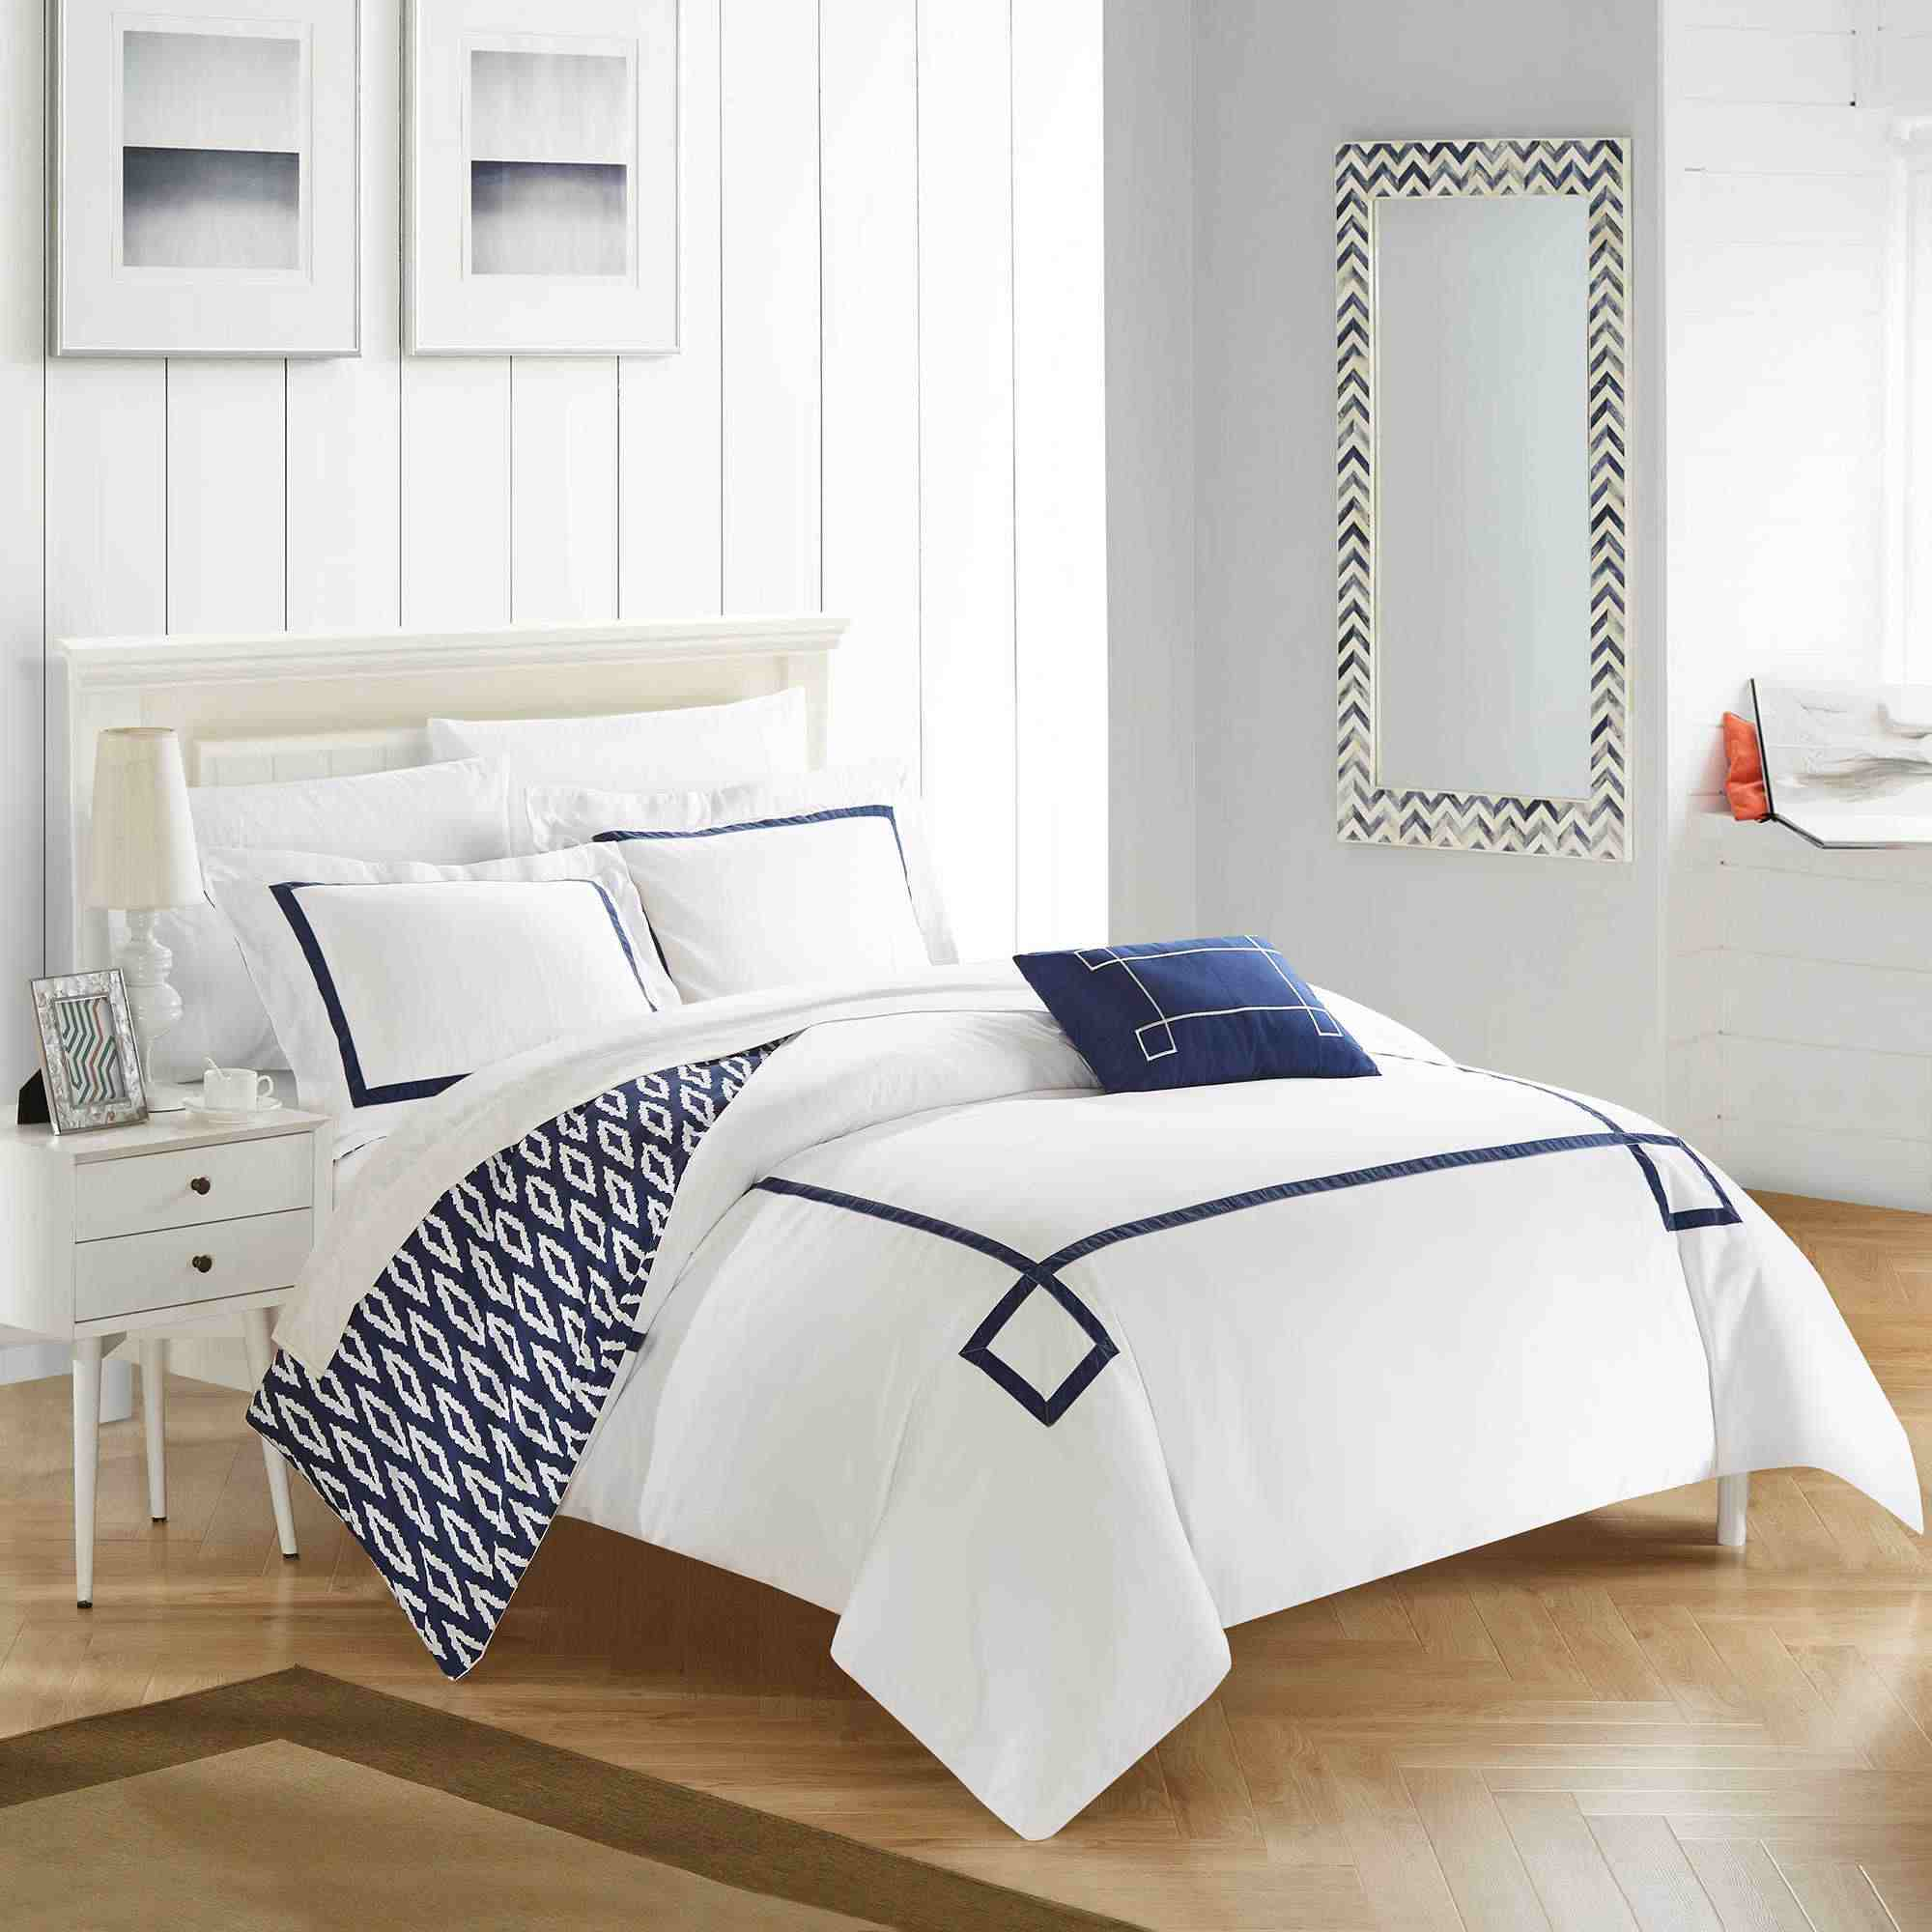 The 10 Best Places To Buy Bedding In 2020